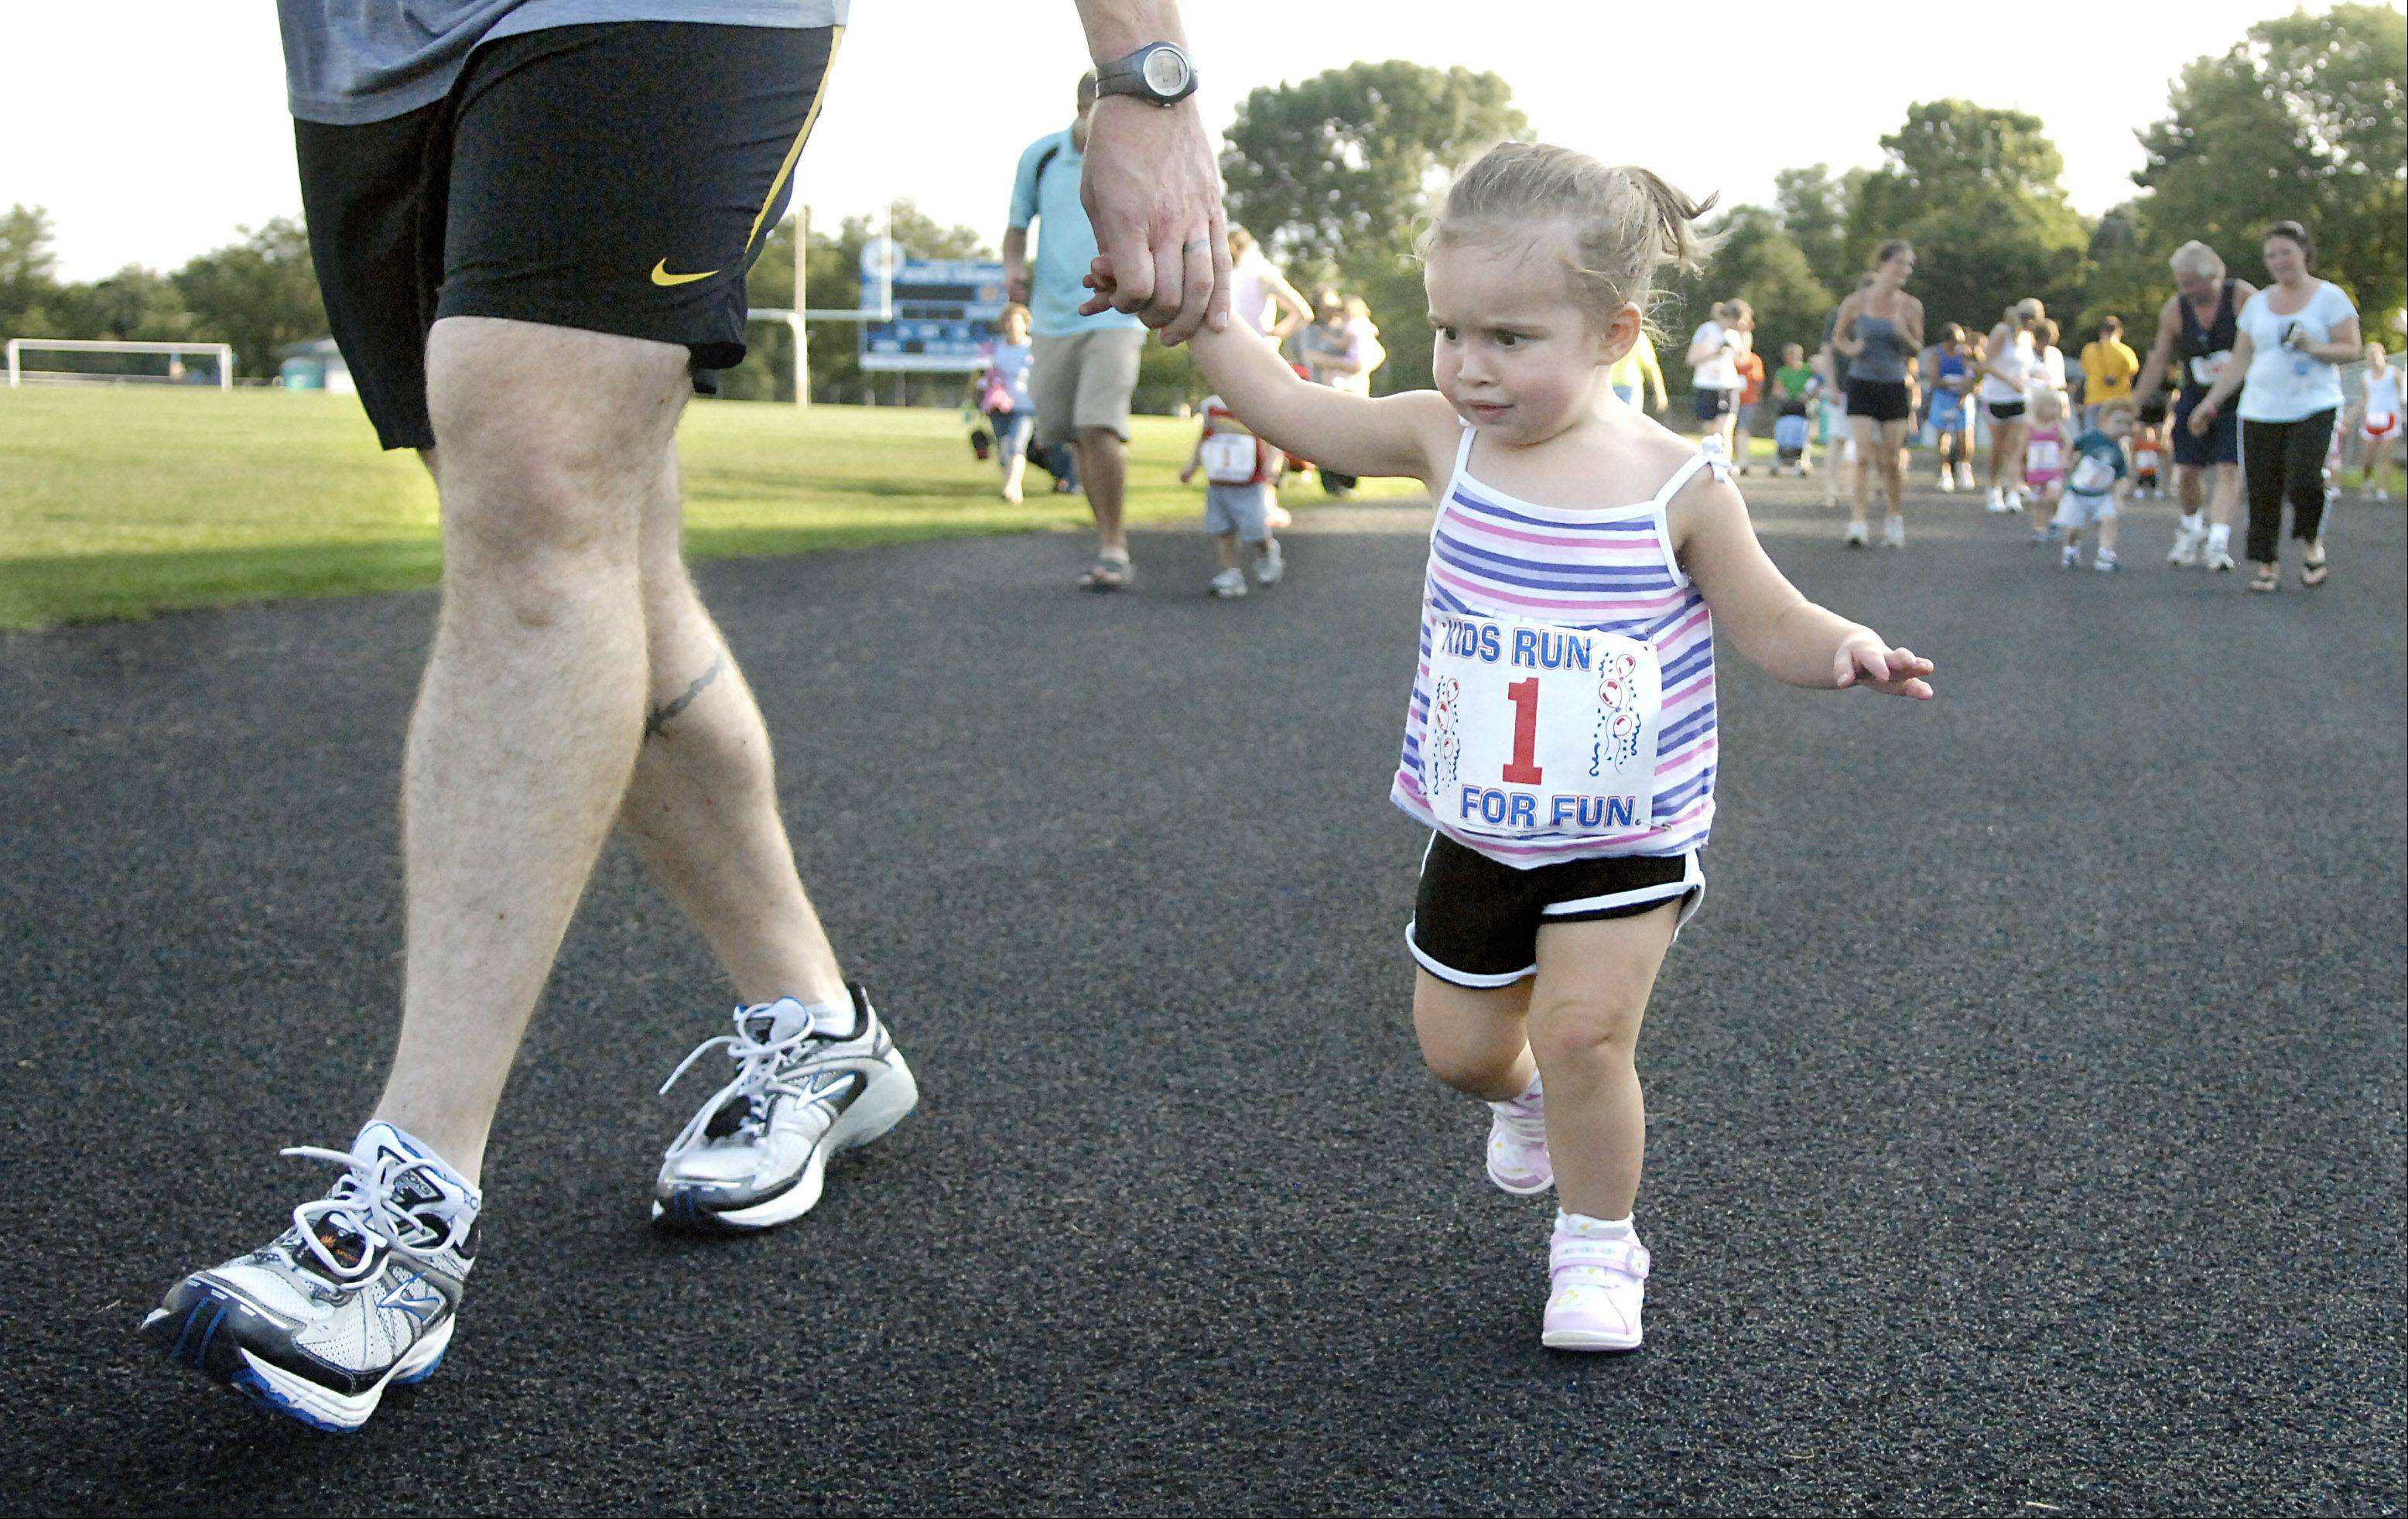 MacKenzie Schroeder, 2, of DeKalb, and her dad, Shaun, near the finish line in the Toddler Trot at the 13th annual Viking Summer Sunset Races.